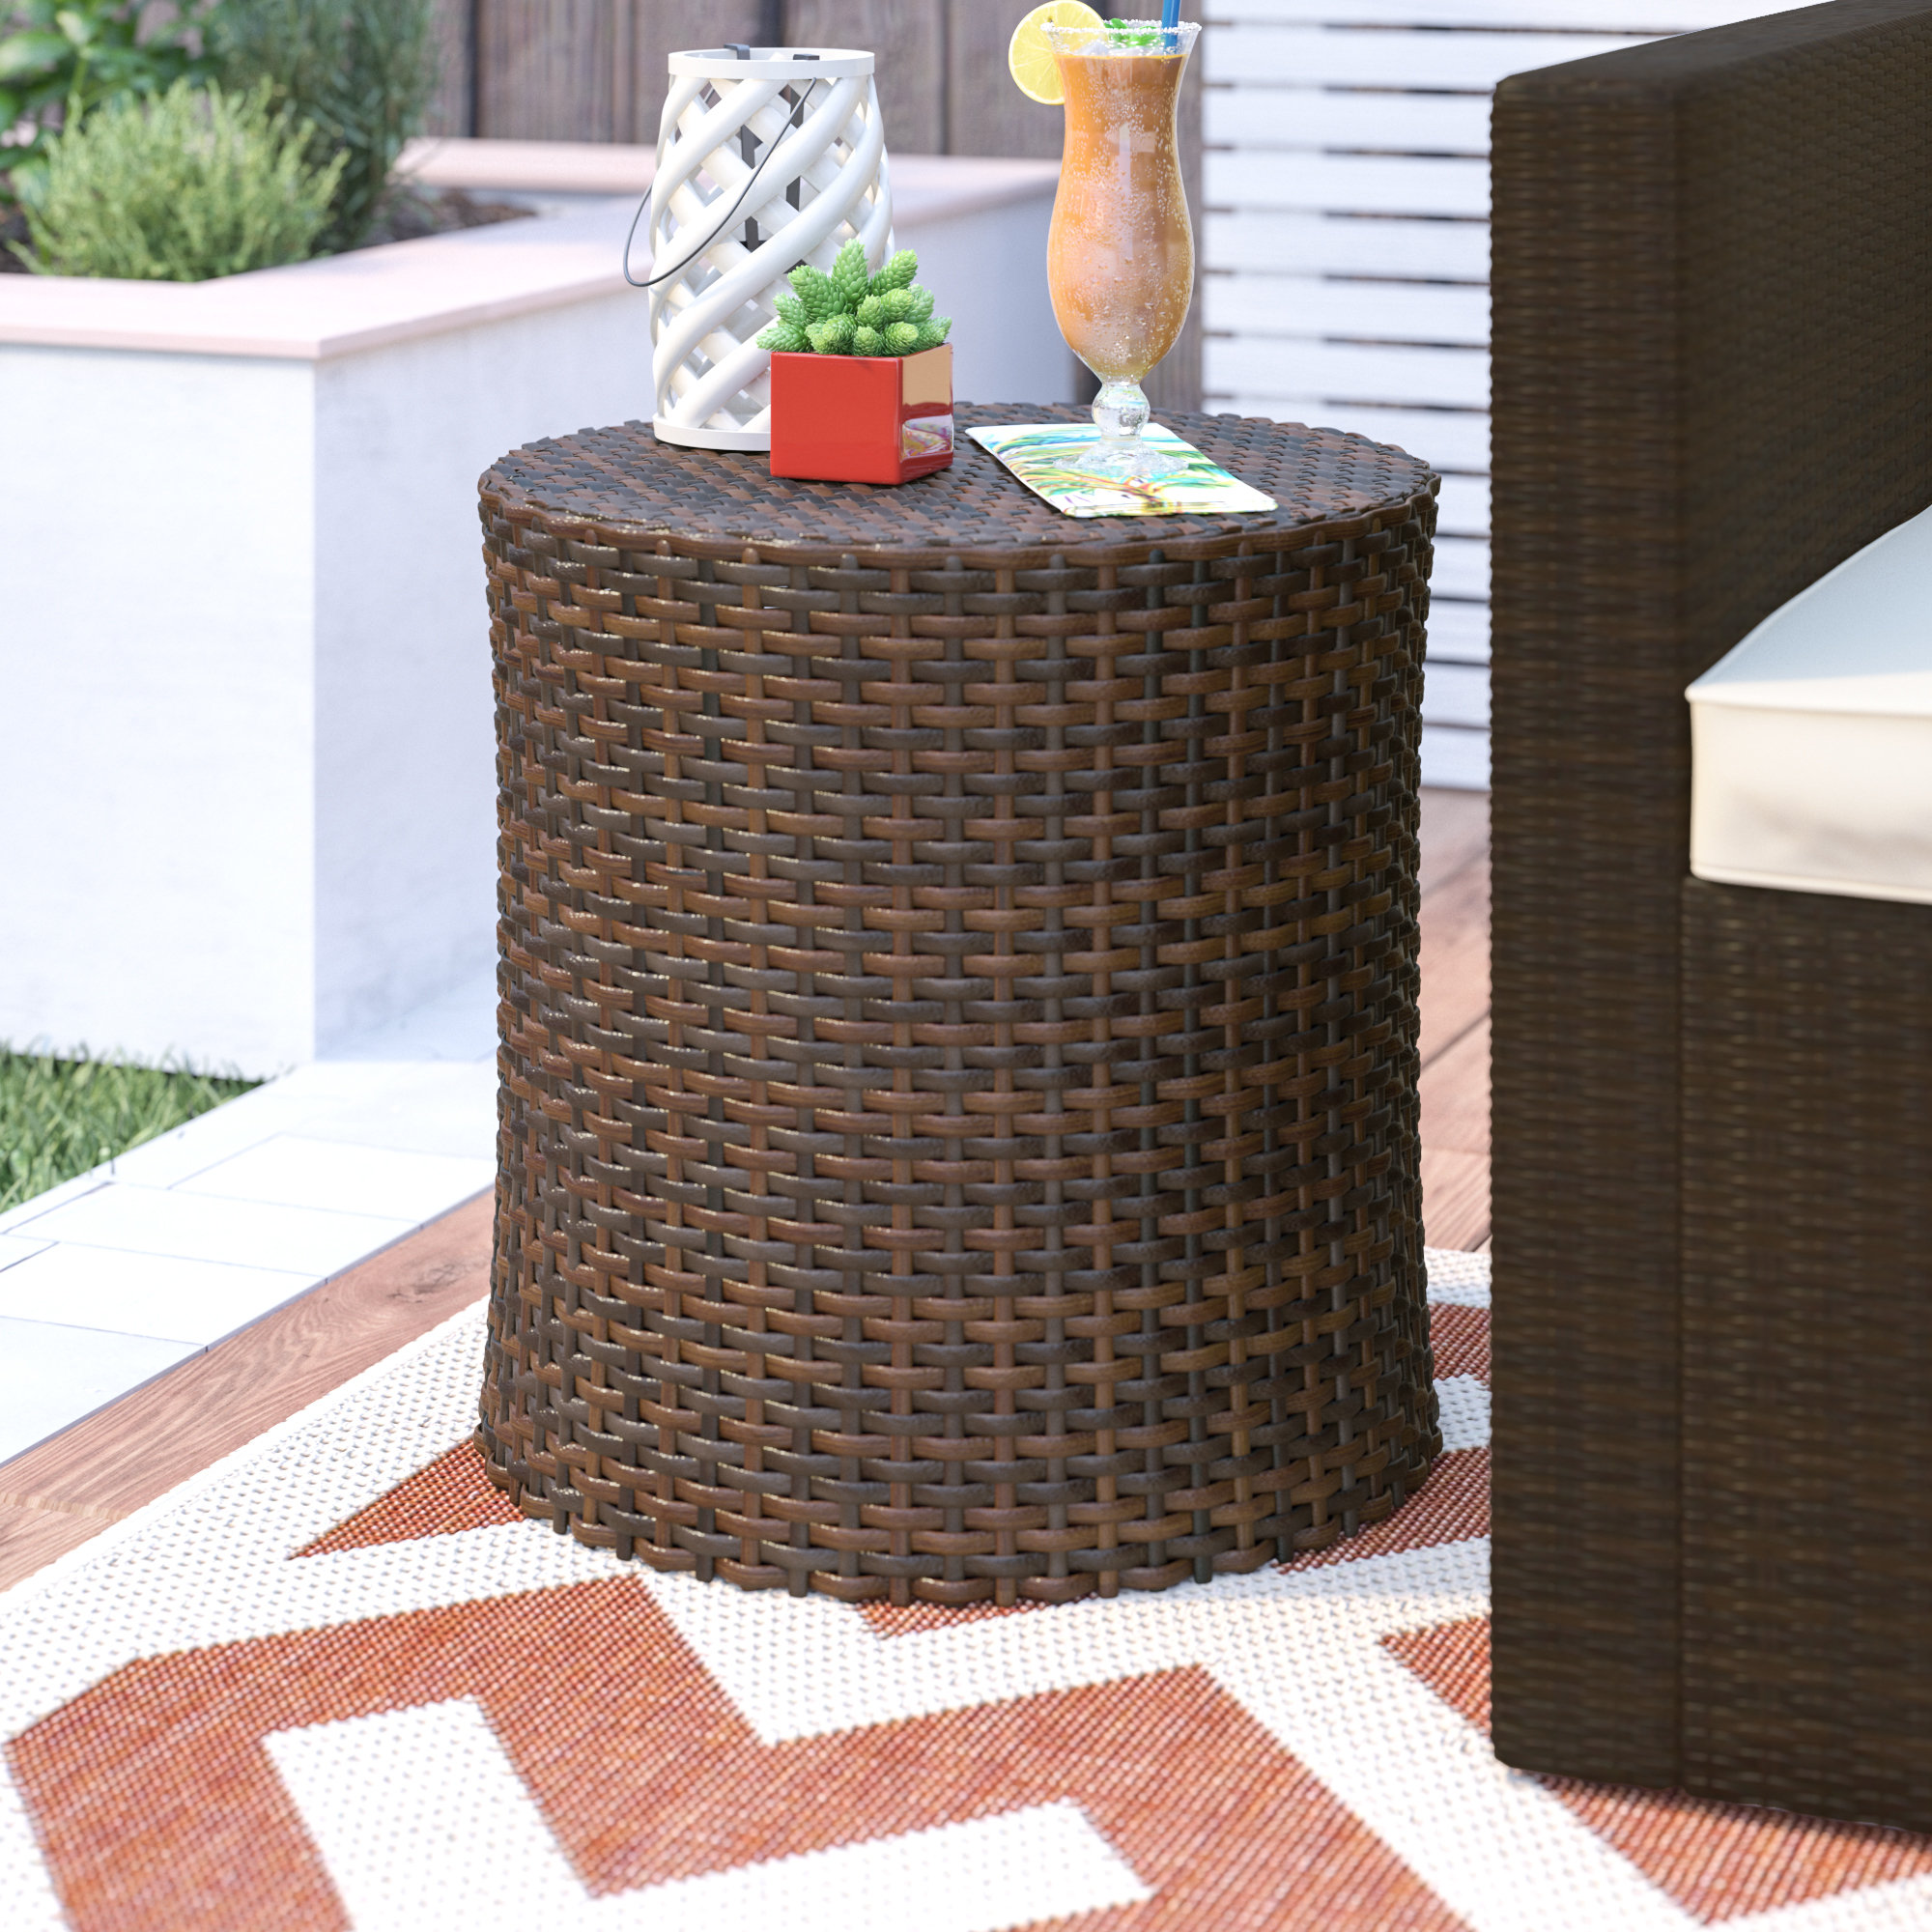 front porch wicker furniture mazzella barrel side table outdoor accent quickview building legs inch wall clock patio cooler hoodie jacket mounted dining with wine rack tall lamp